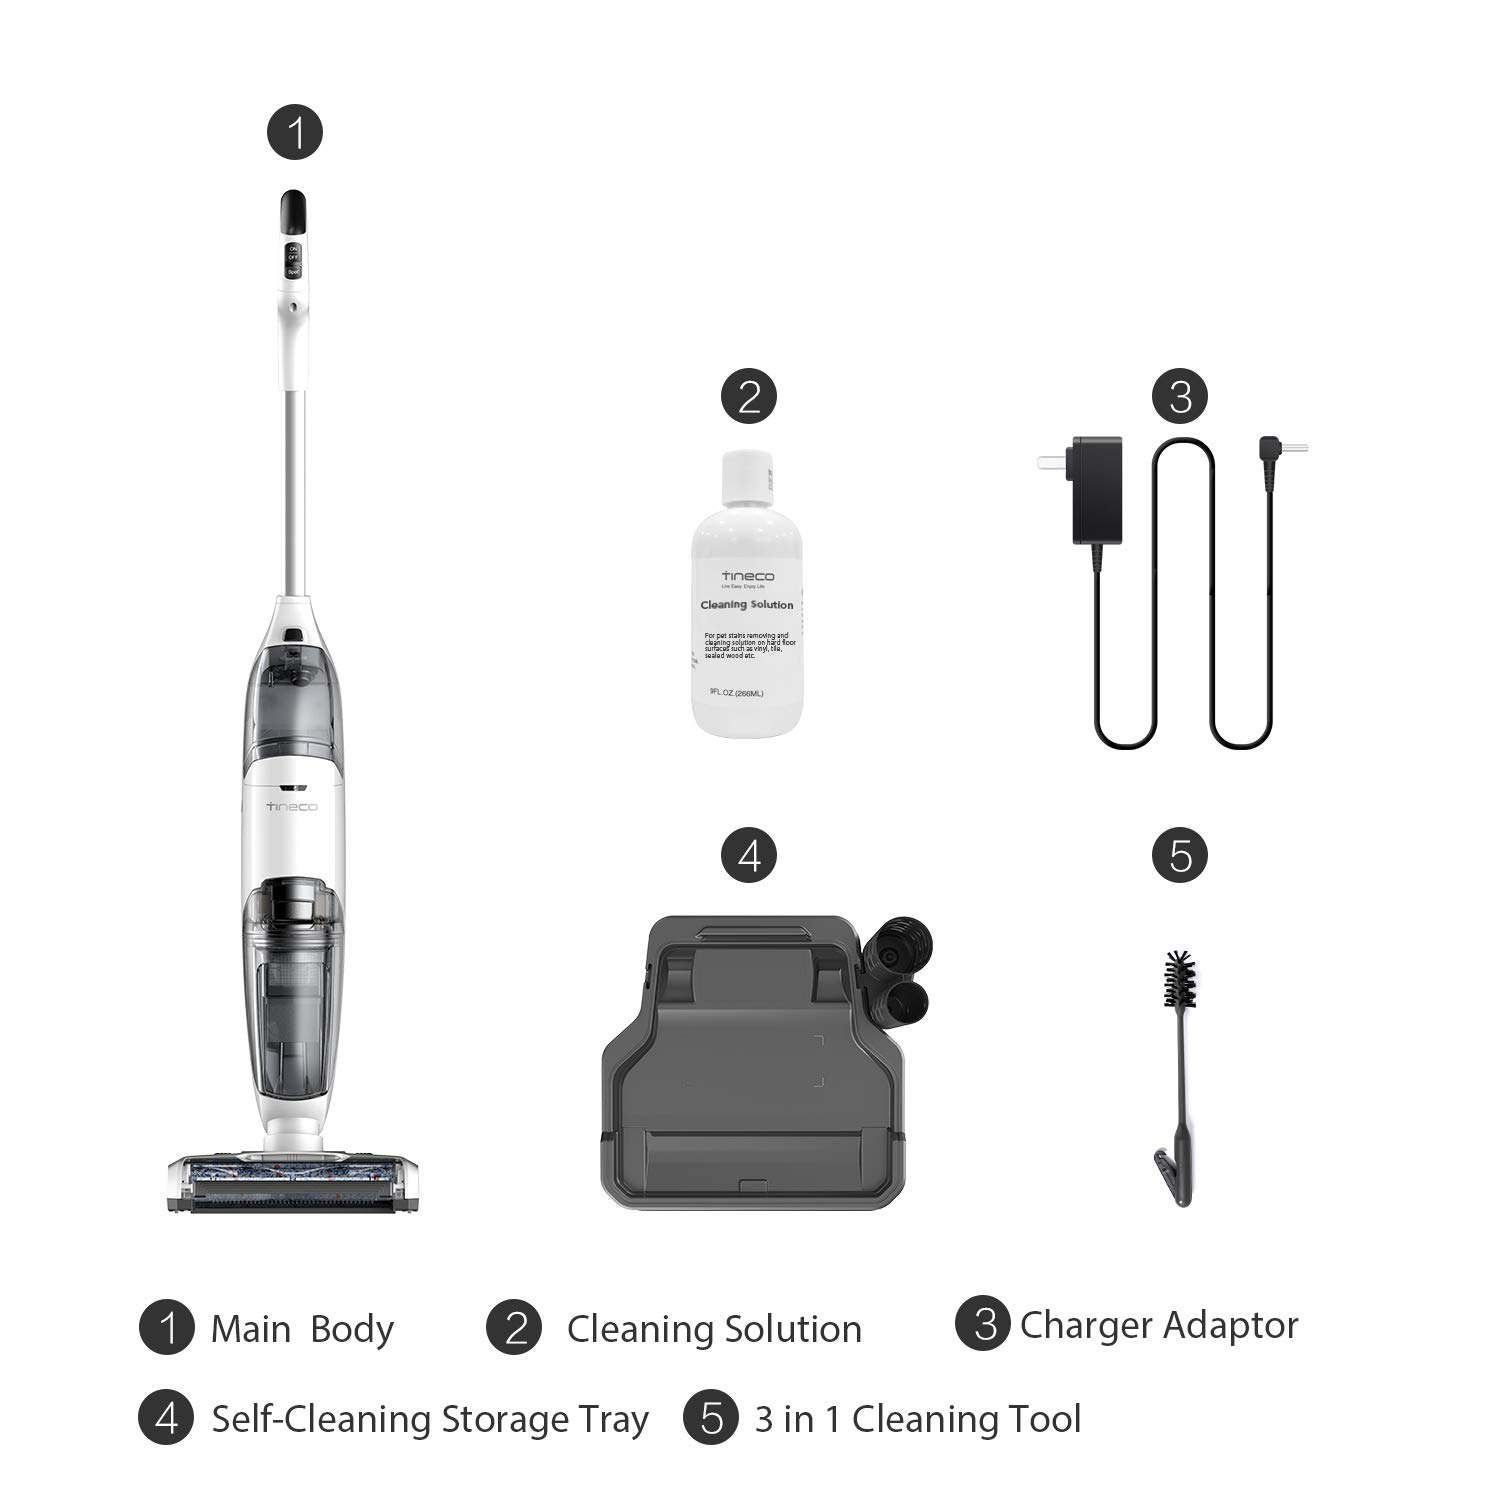 Tineco iFloor Cordless Wet Dry Vacuum Cleaner Powerful and Lightweight Hard Floor Washer with Self-Cleaning Brush by Tineco (Image #6)